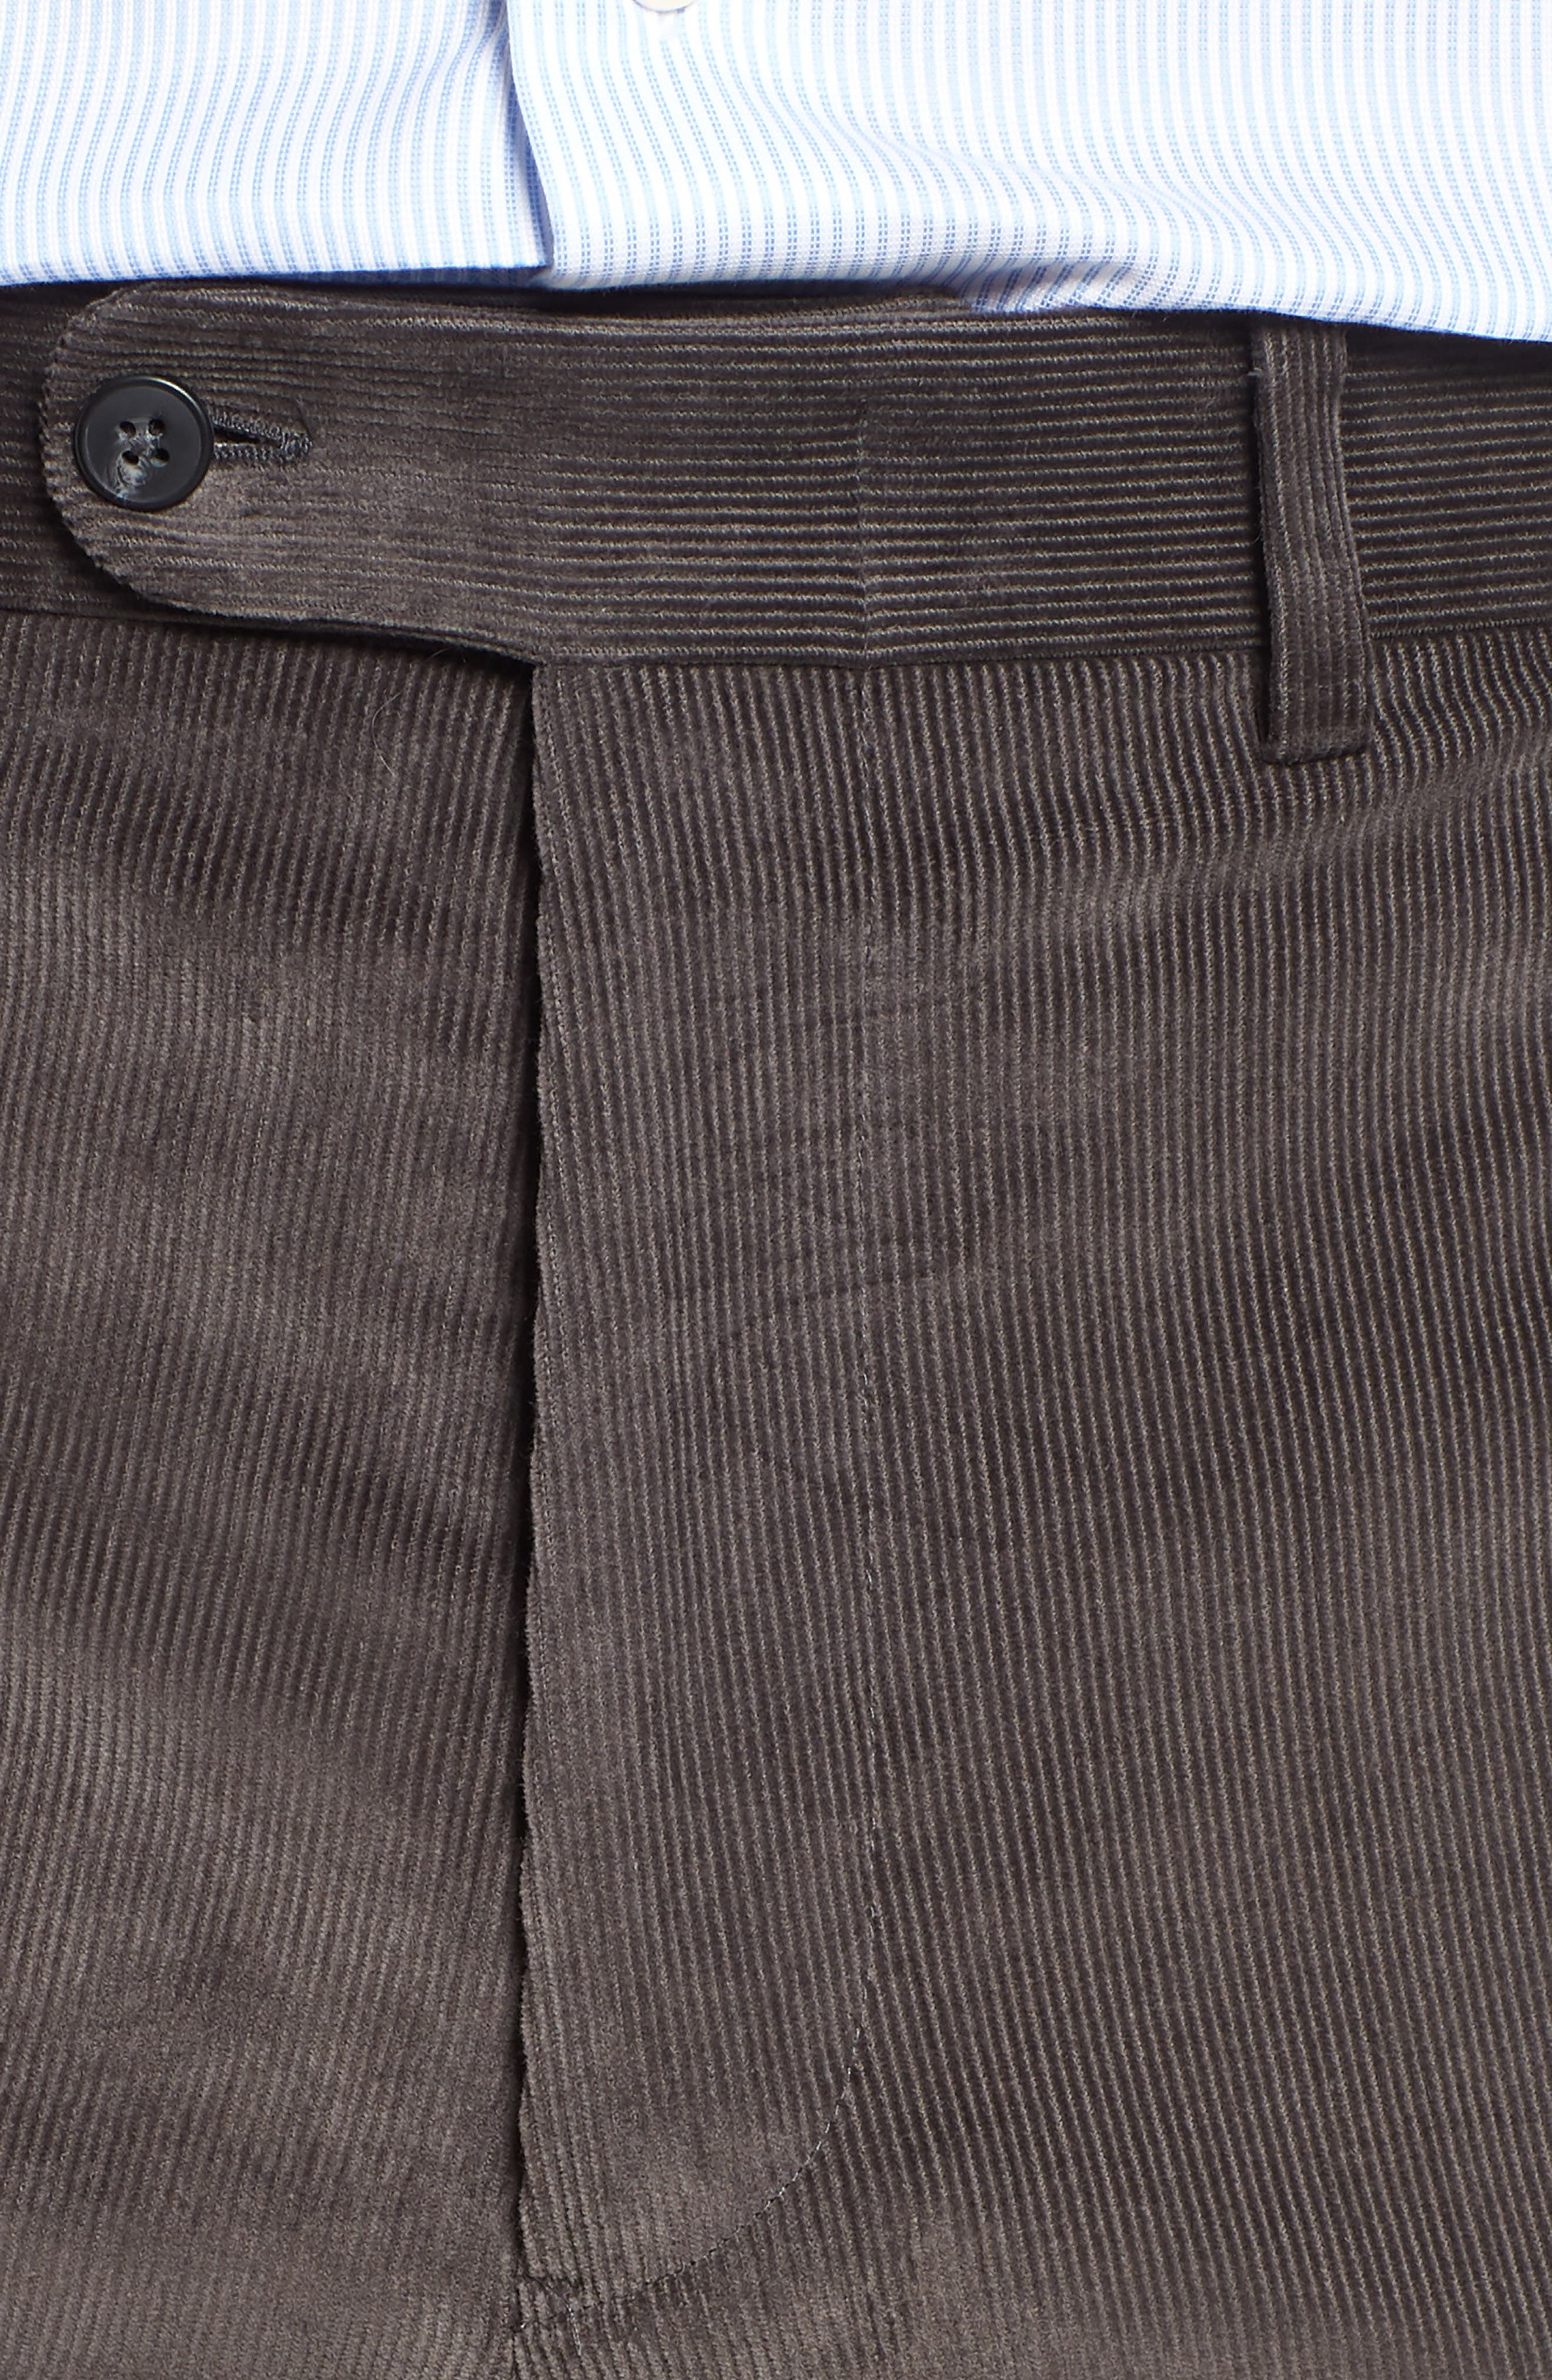 Torino Traditional Fit Flat Front Corduroy Trousers,                             Alternate thumbnail 4, color,                             GREY